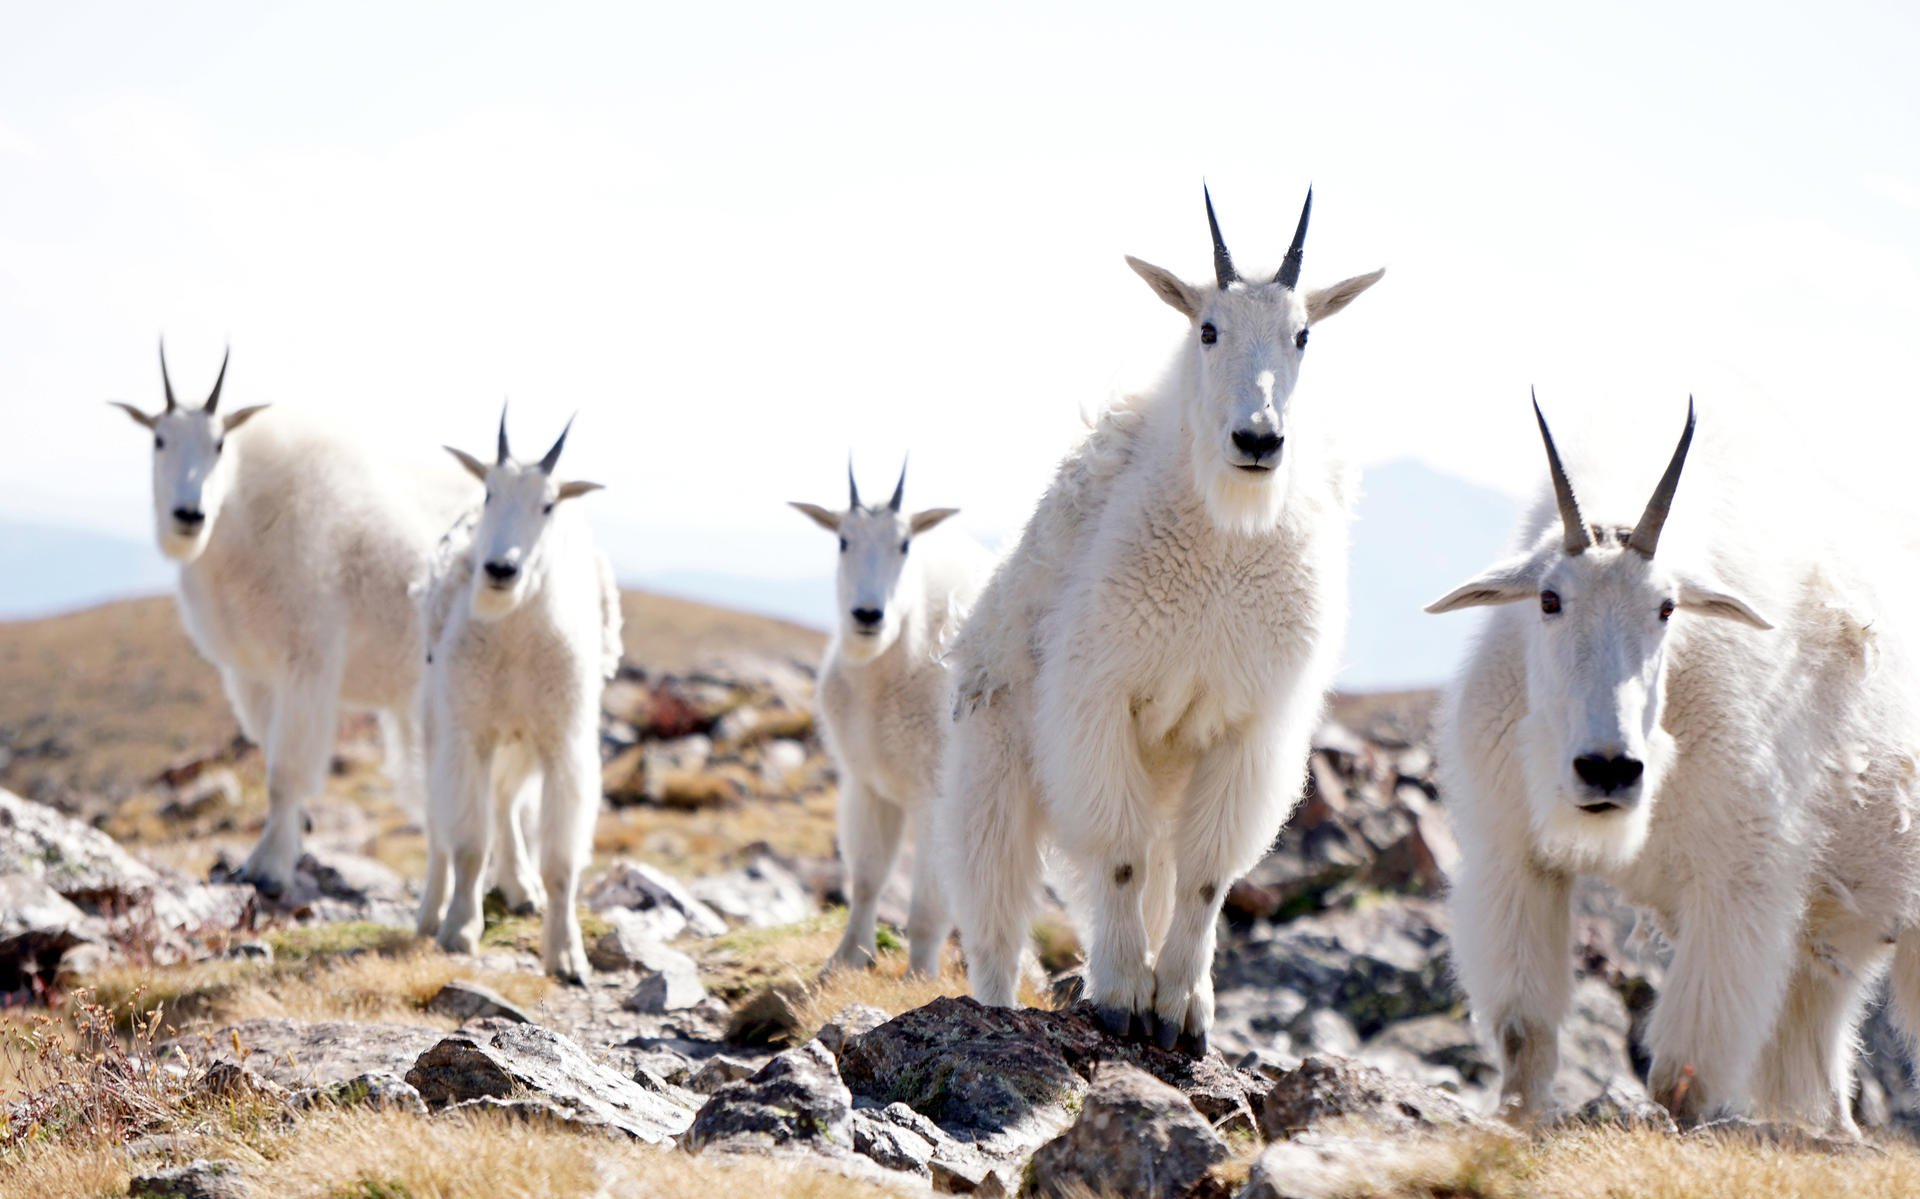 Best Hikes to See Mountain Goats - Outdoor Project